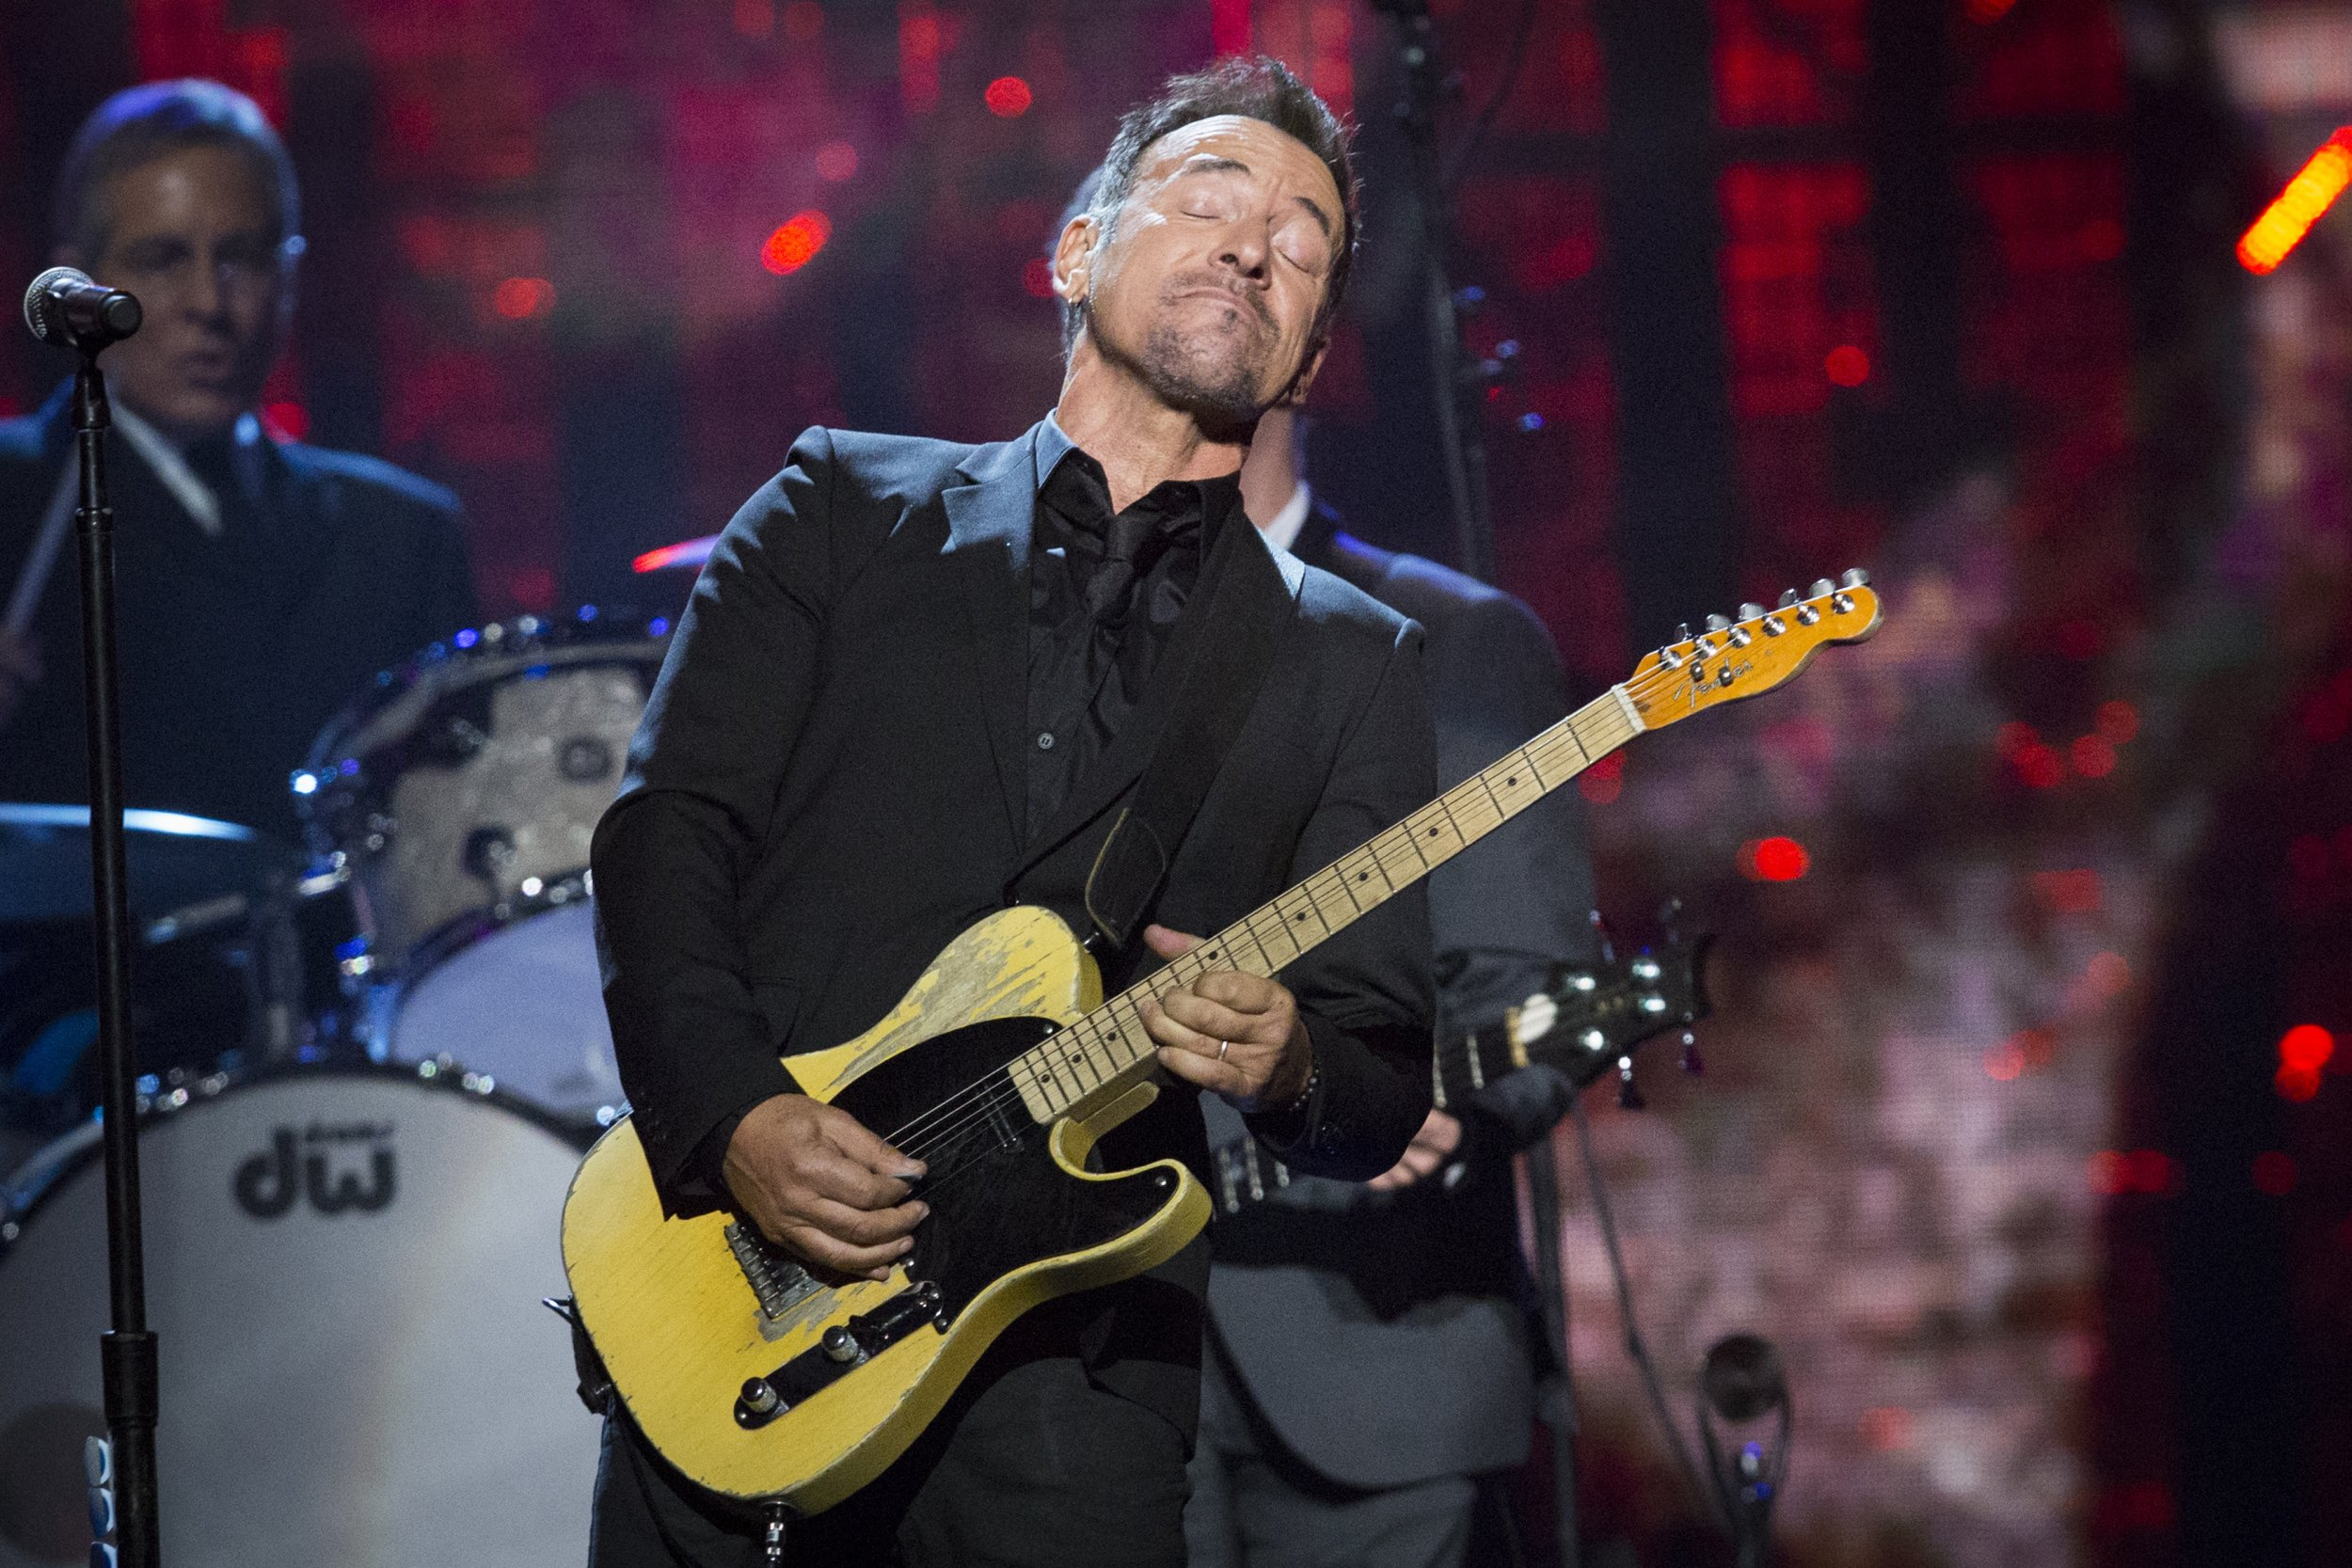 Newsweeks Cover On Bruce Springsteen Making Of A Rock Star